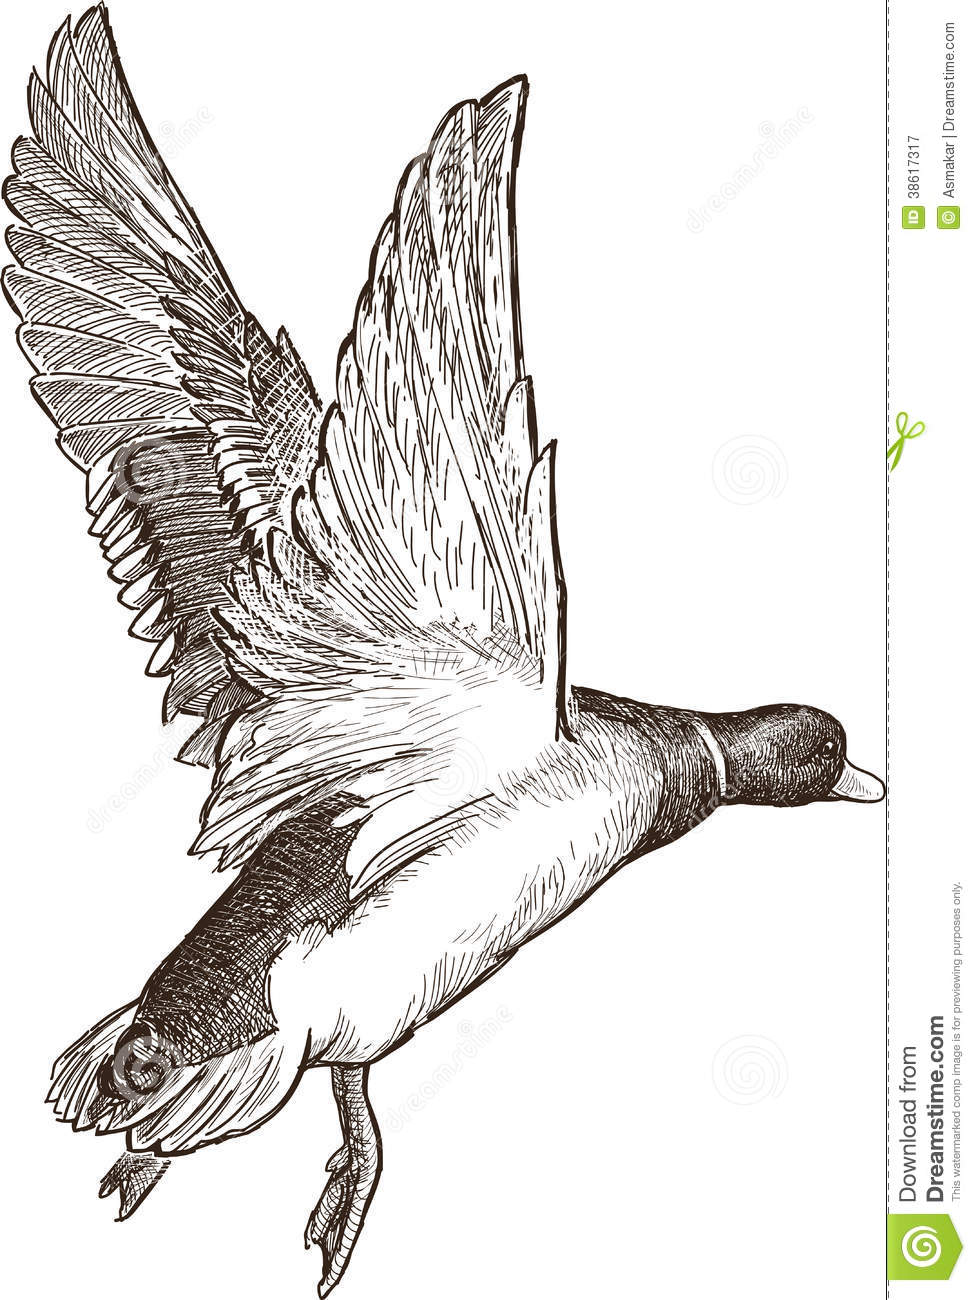 the wild duck thesis Free essay: illusions and realities in ibsen's plays the wild duck and ghosts in ibsen's the wild duck, illusions and reality are set into a conflict within.